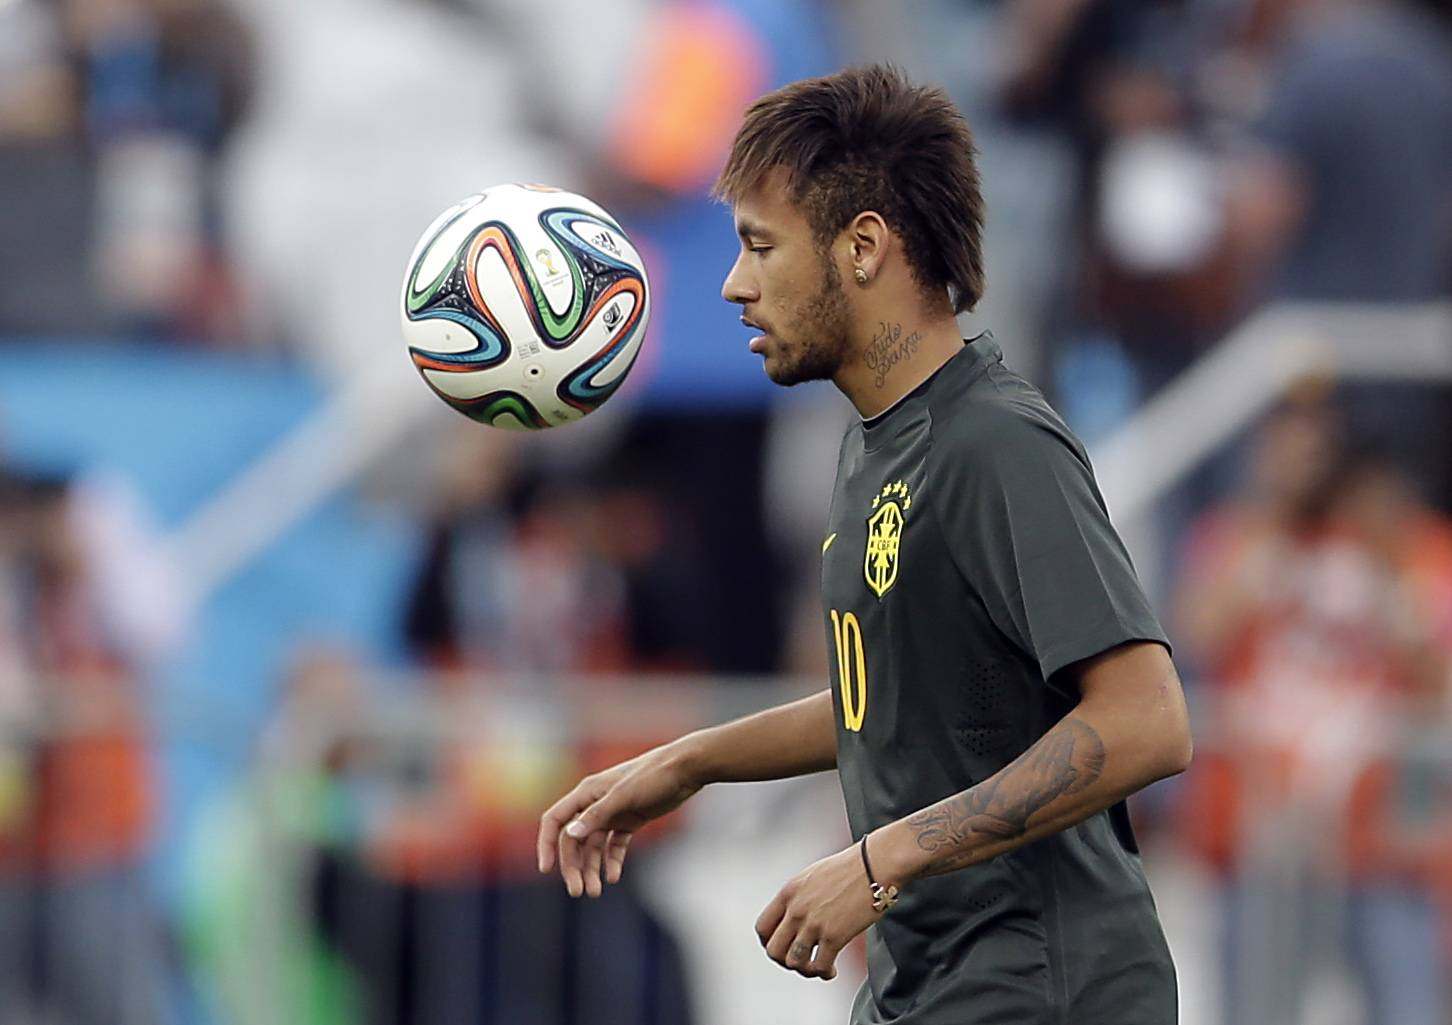 Brazil's Neymar heads the ball during an official training session Wednesday the day before the group A World Cup soccer match between Brazil and Croatia in the Itaquerao Stadium, Sao Paulo, Brazil.